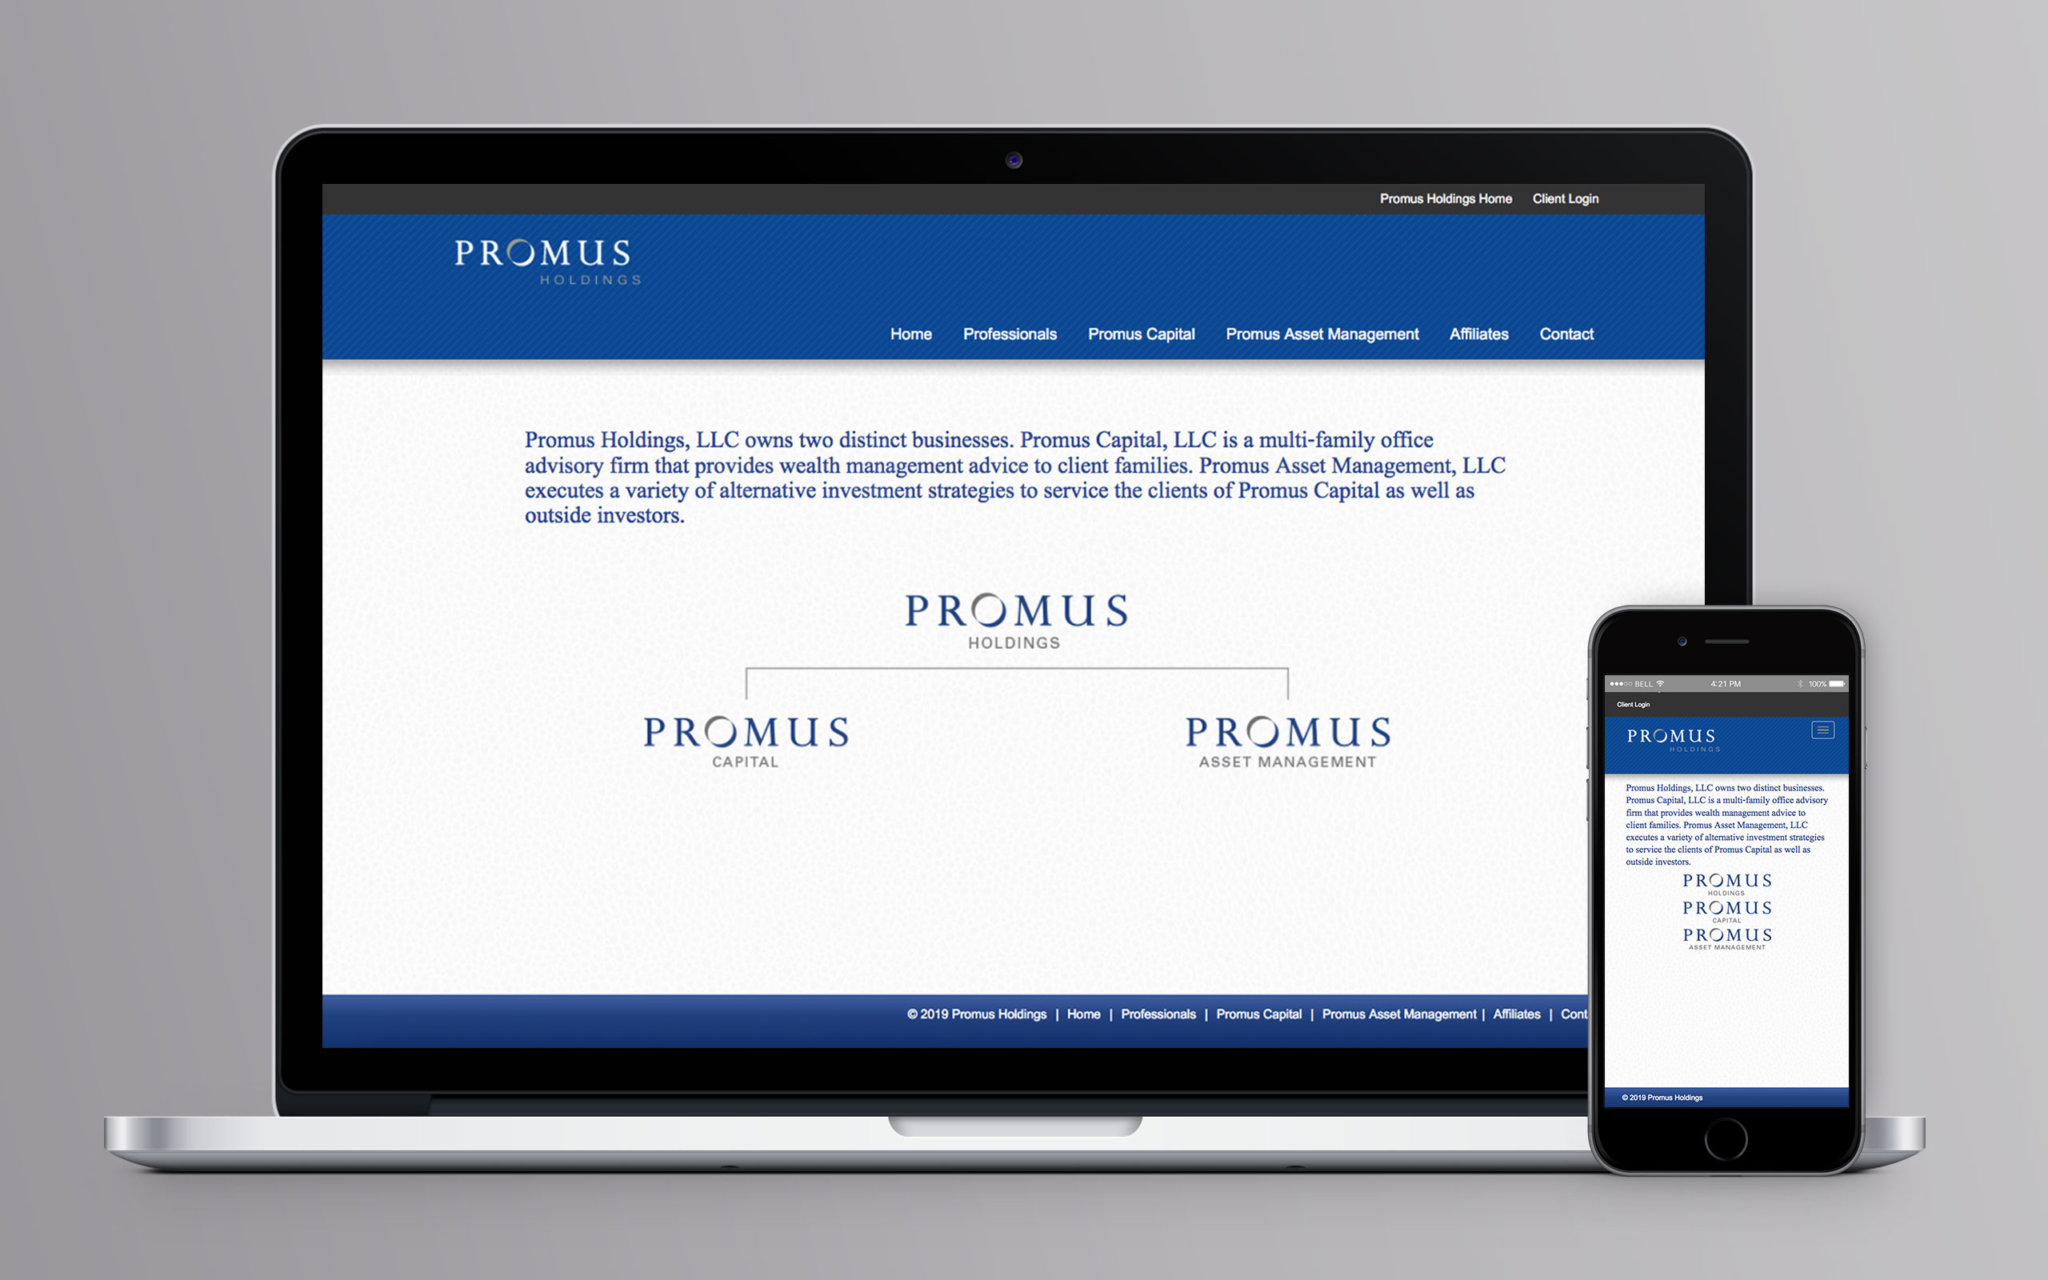 Promus Holdings Website Home